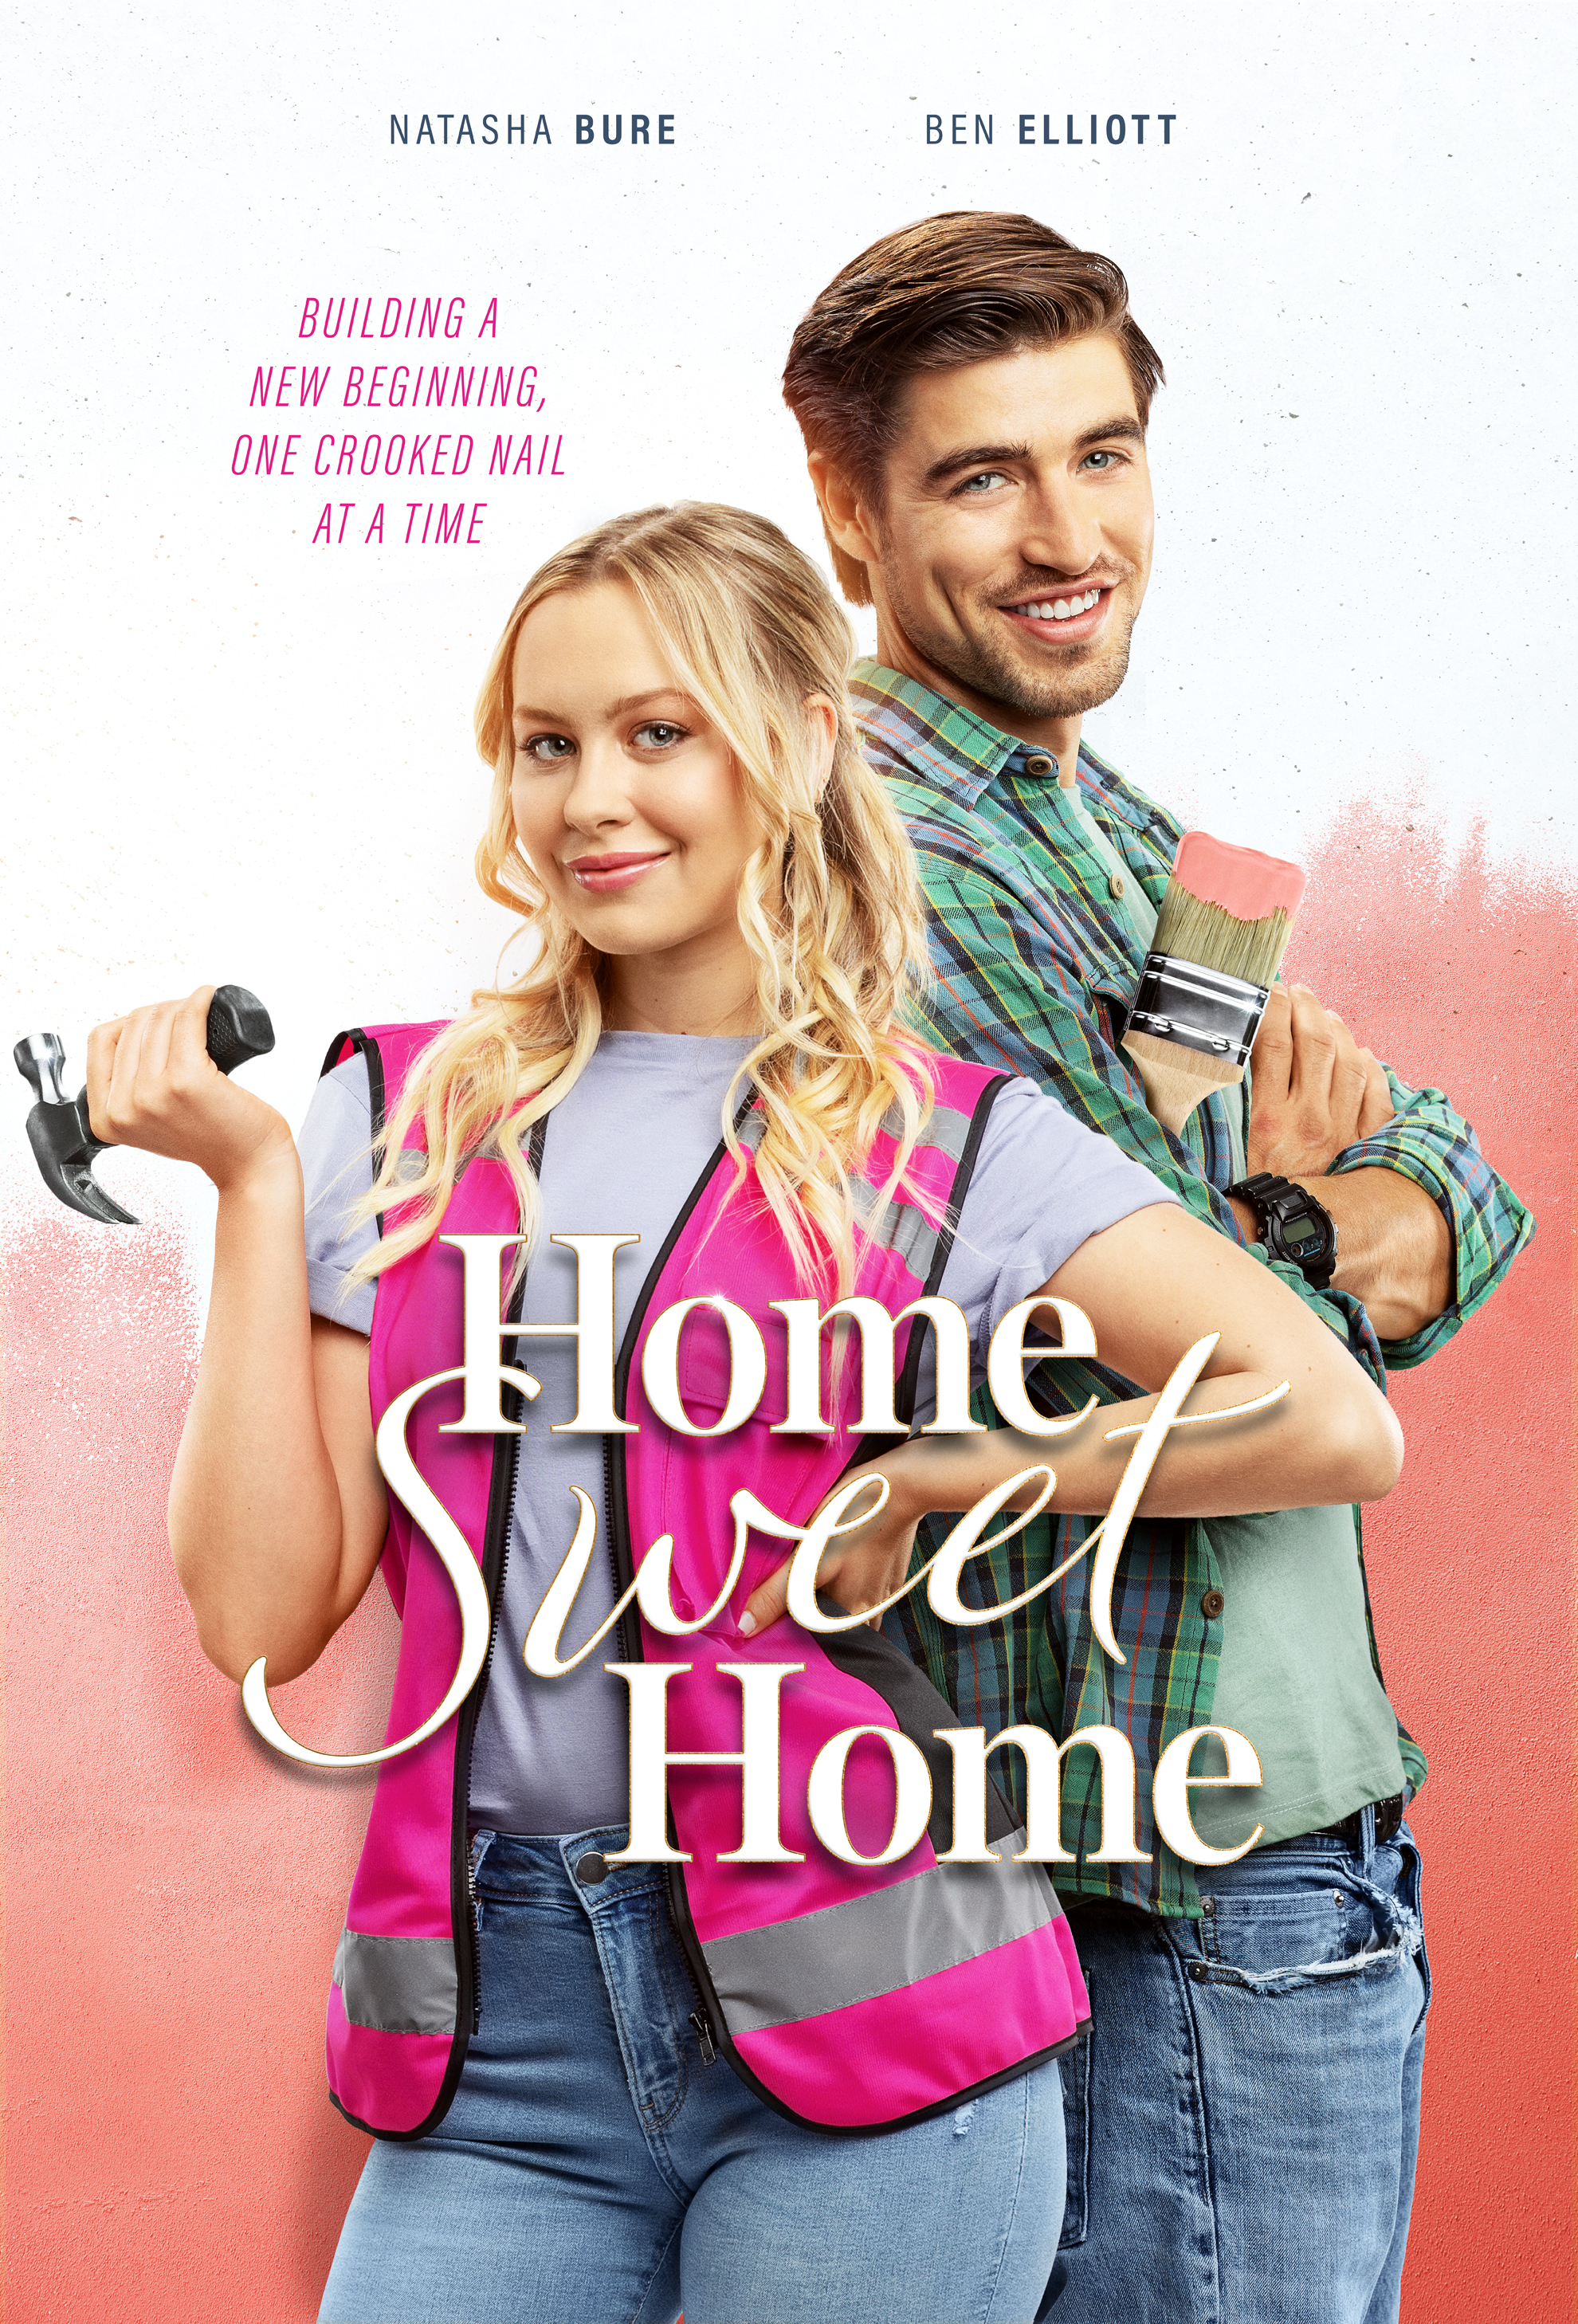 "Natasha Bure, Star of New Christian Rom-Com ""Home Sweet Home"", Opens Up About the Importance of Finding Your Identity and Being Authentic"